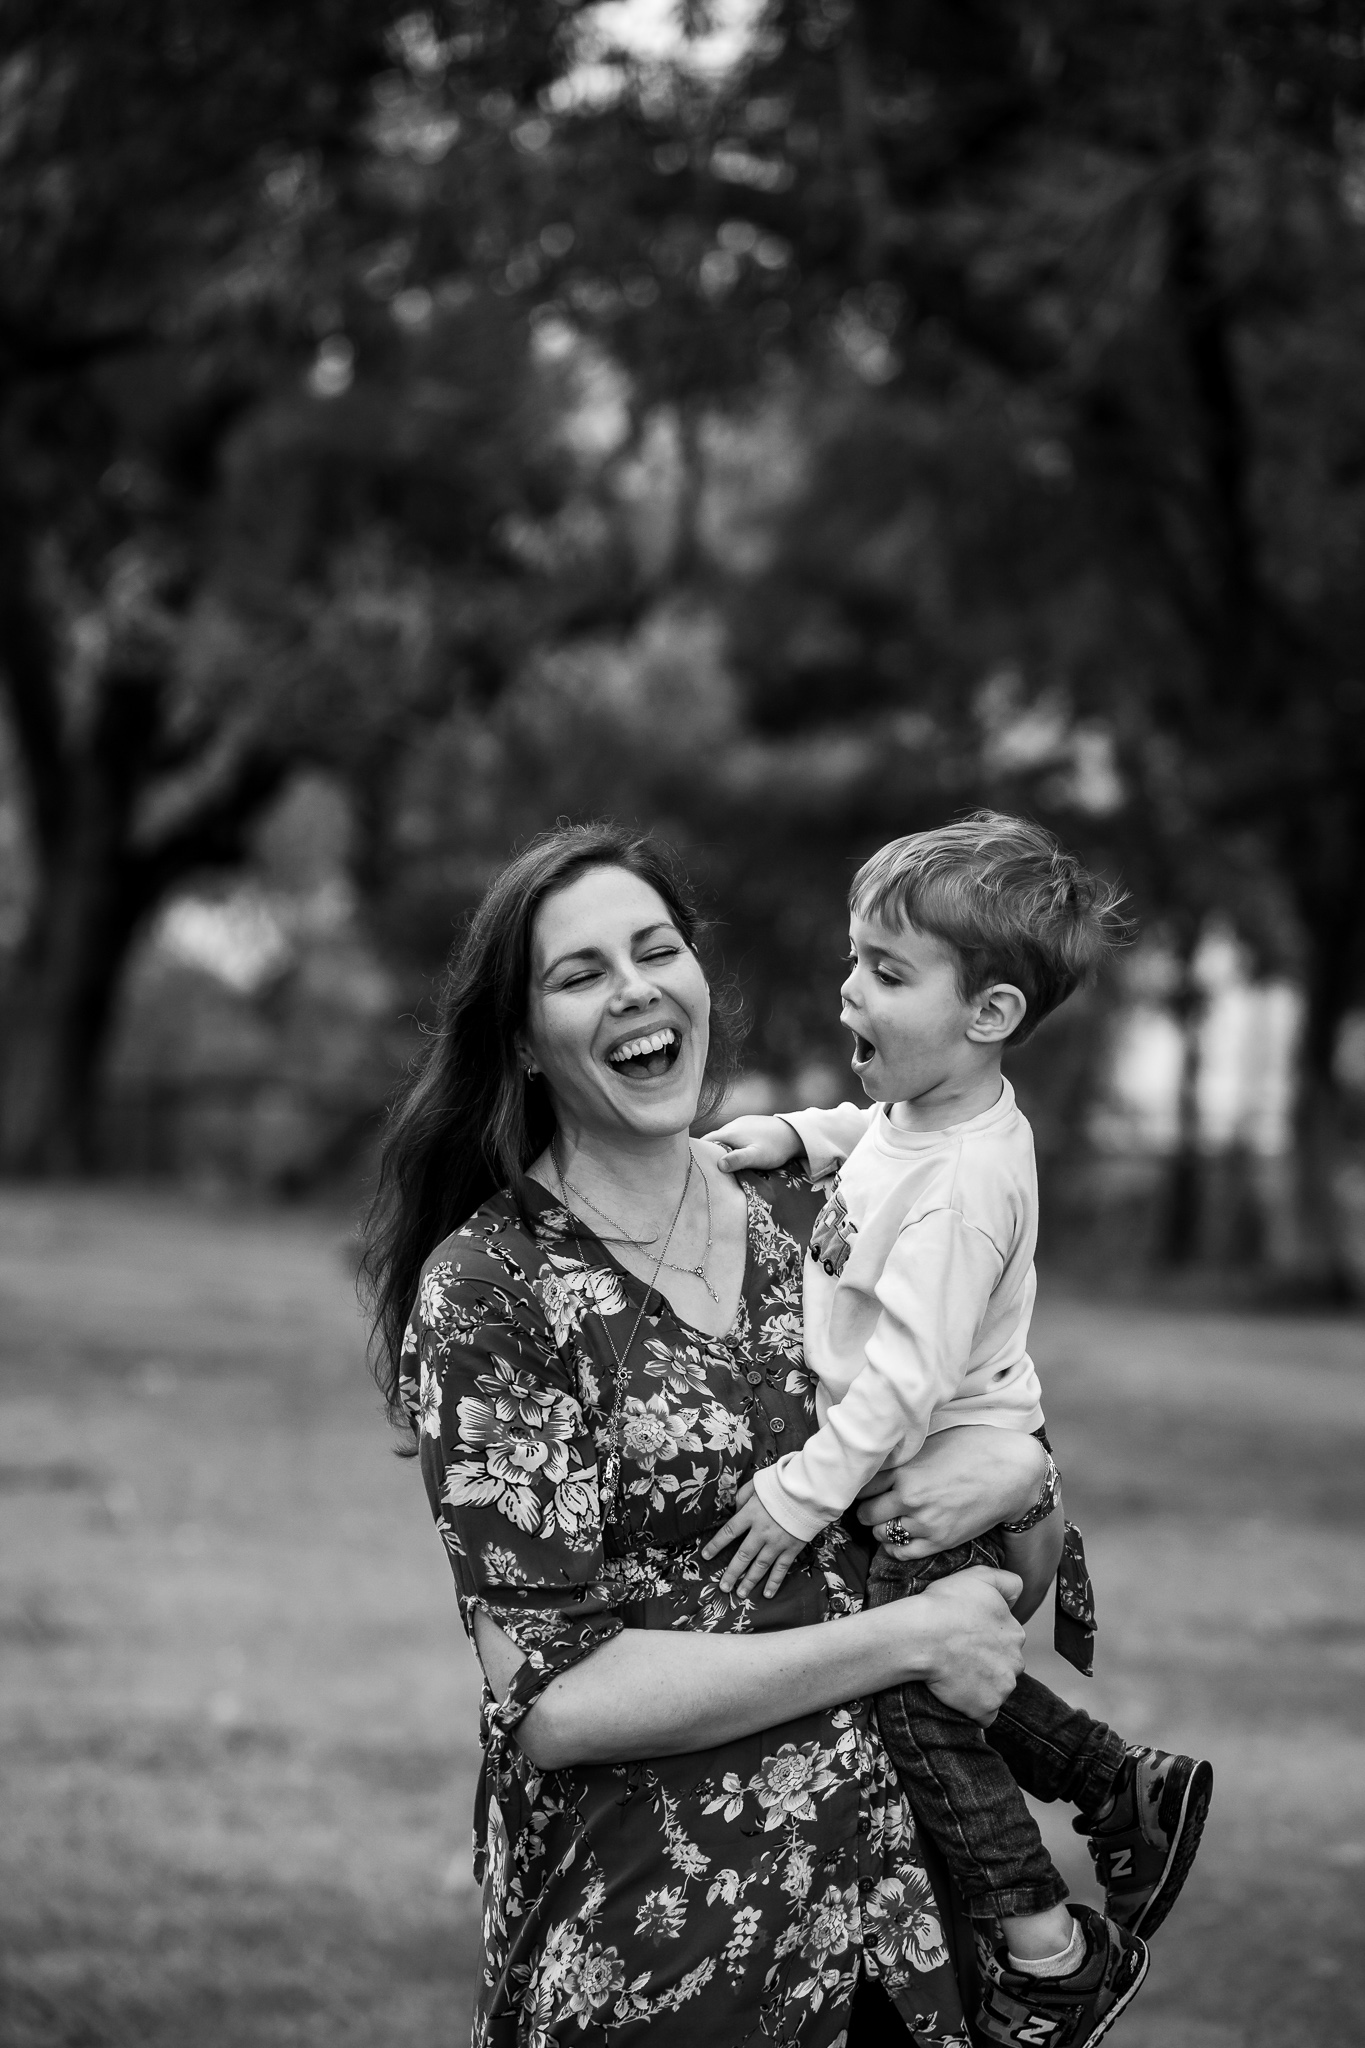 Jack-and-Purdy-Perth-Family-Photographer-9.jpg